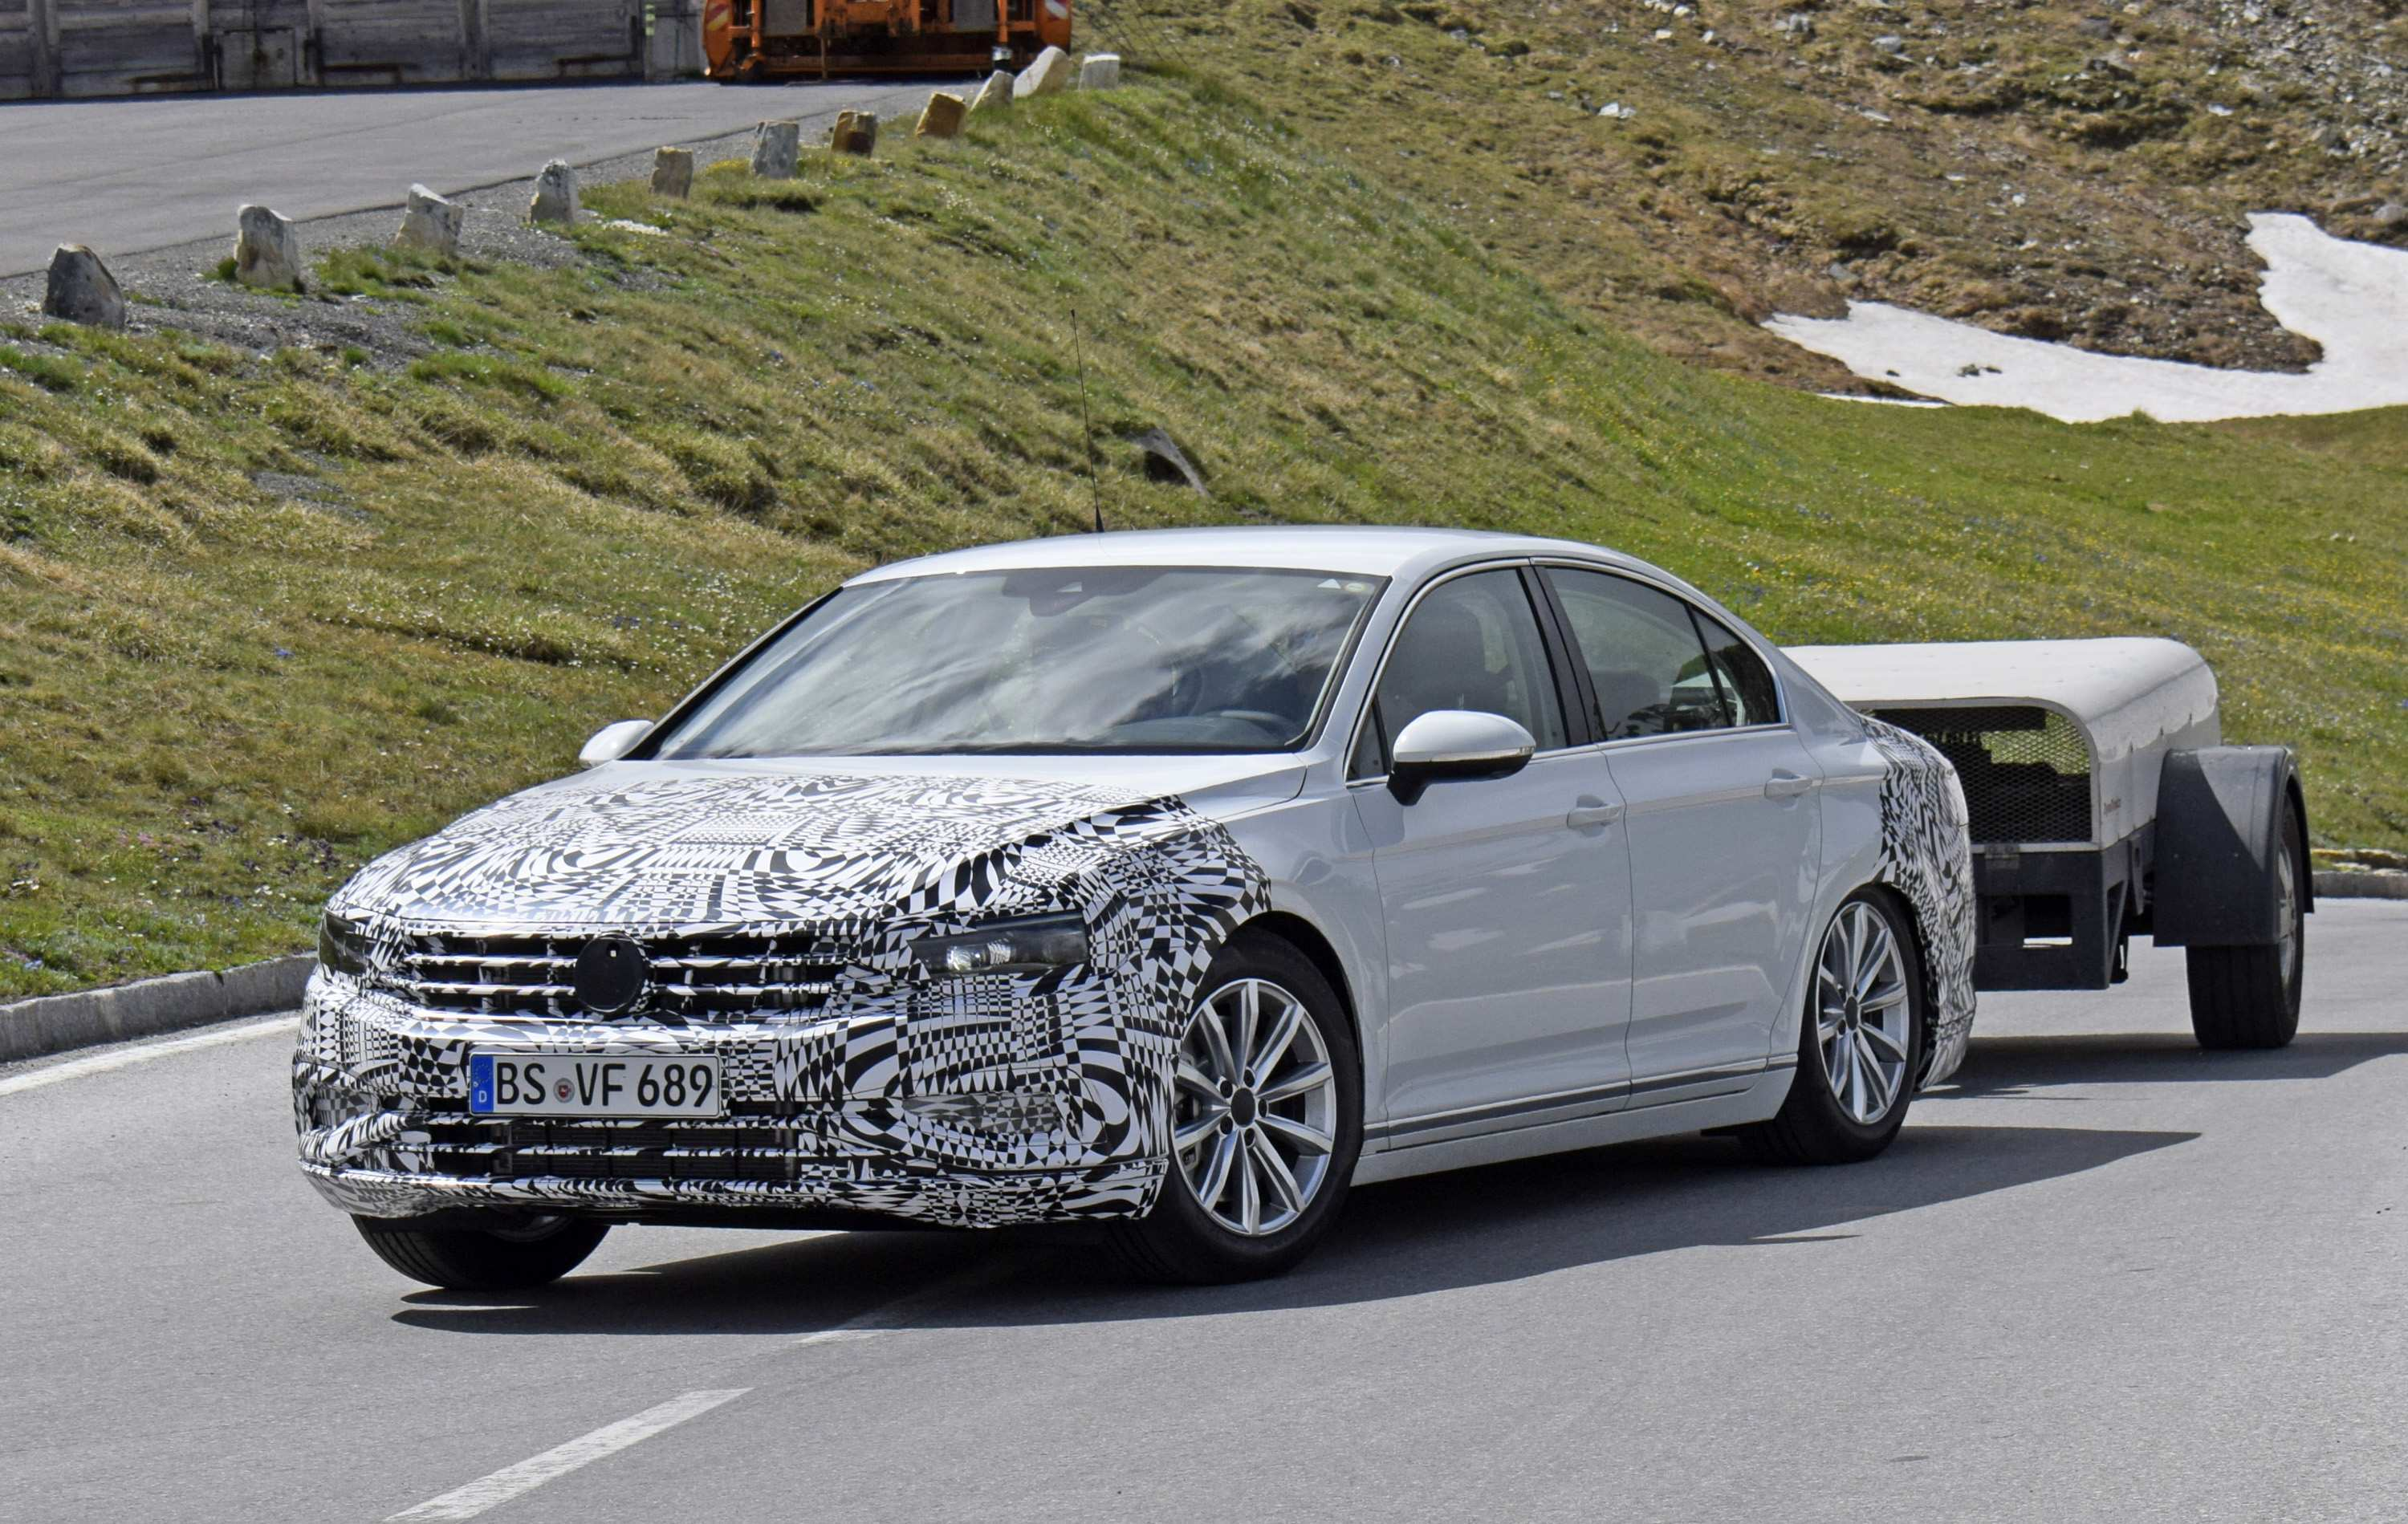 86 Great The Volkswagen Passat 2019 Interior Spy Shoot Configurations by The Volkswagen Passat 2019 Interior Spy Shoot